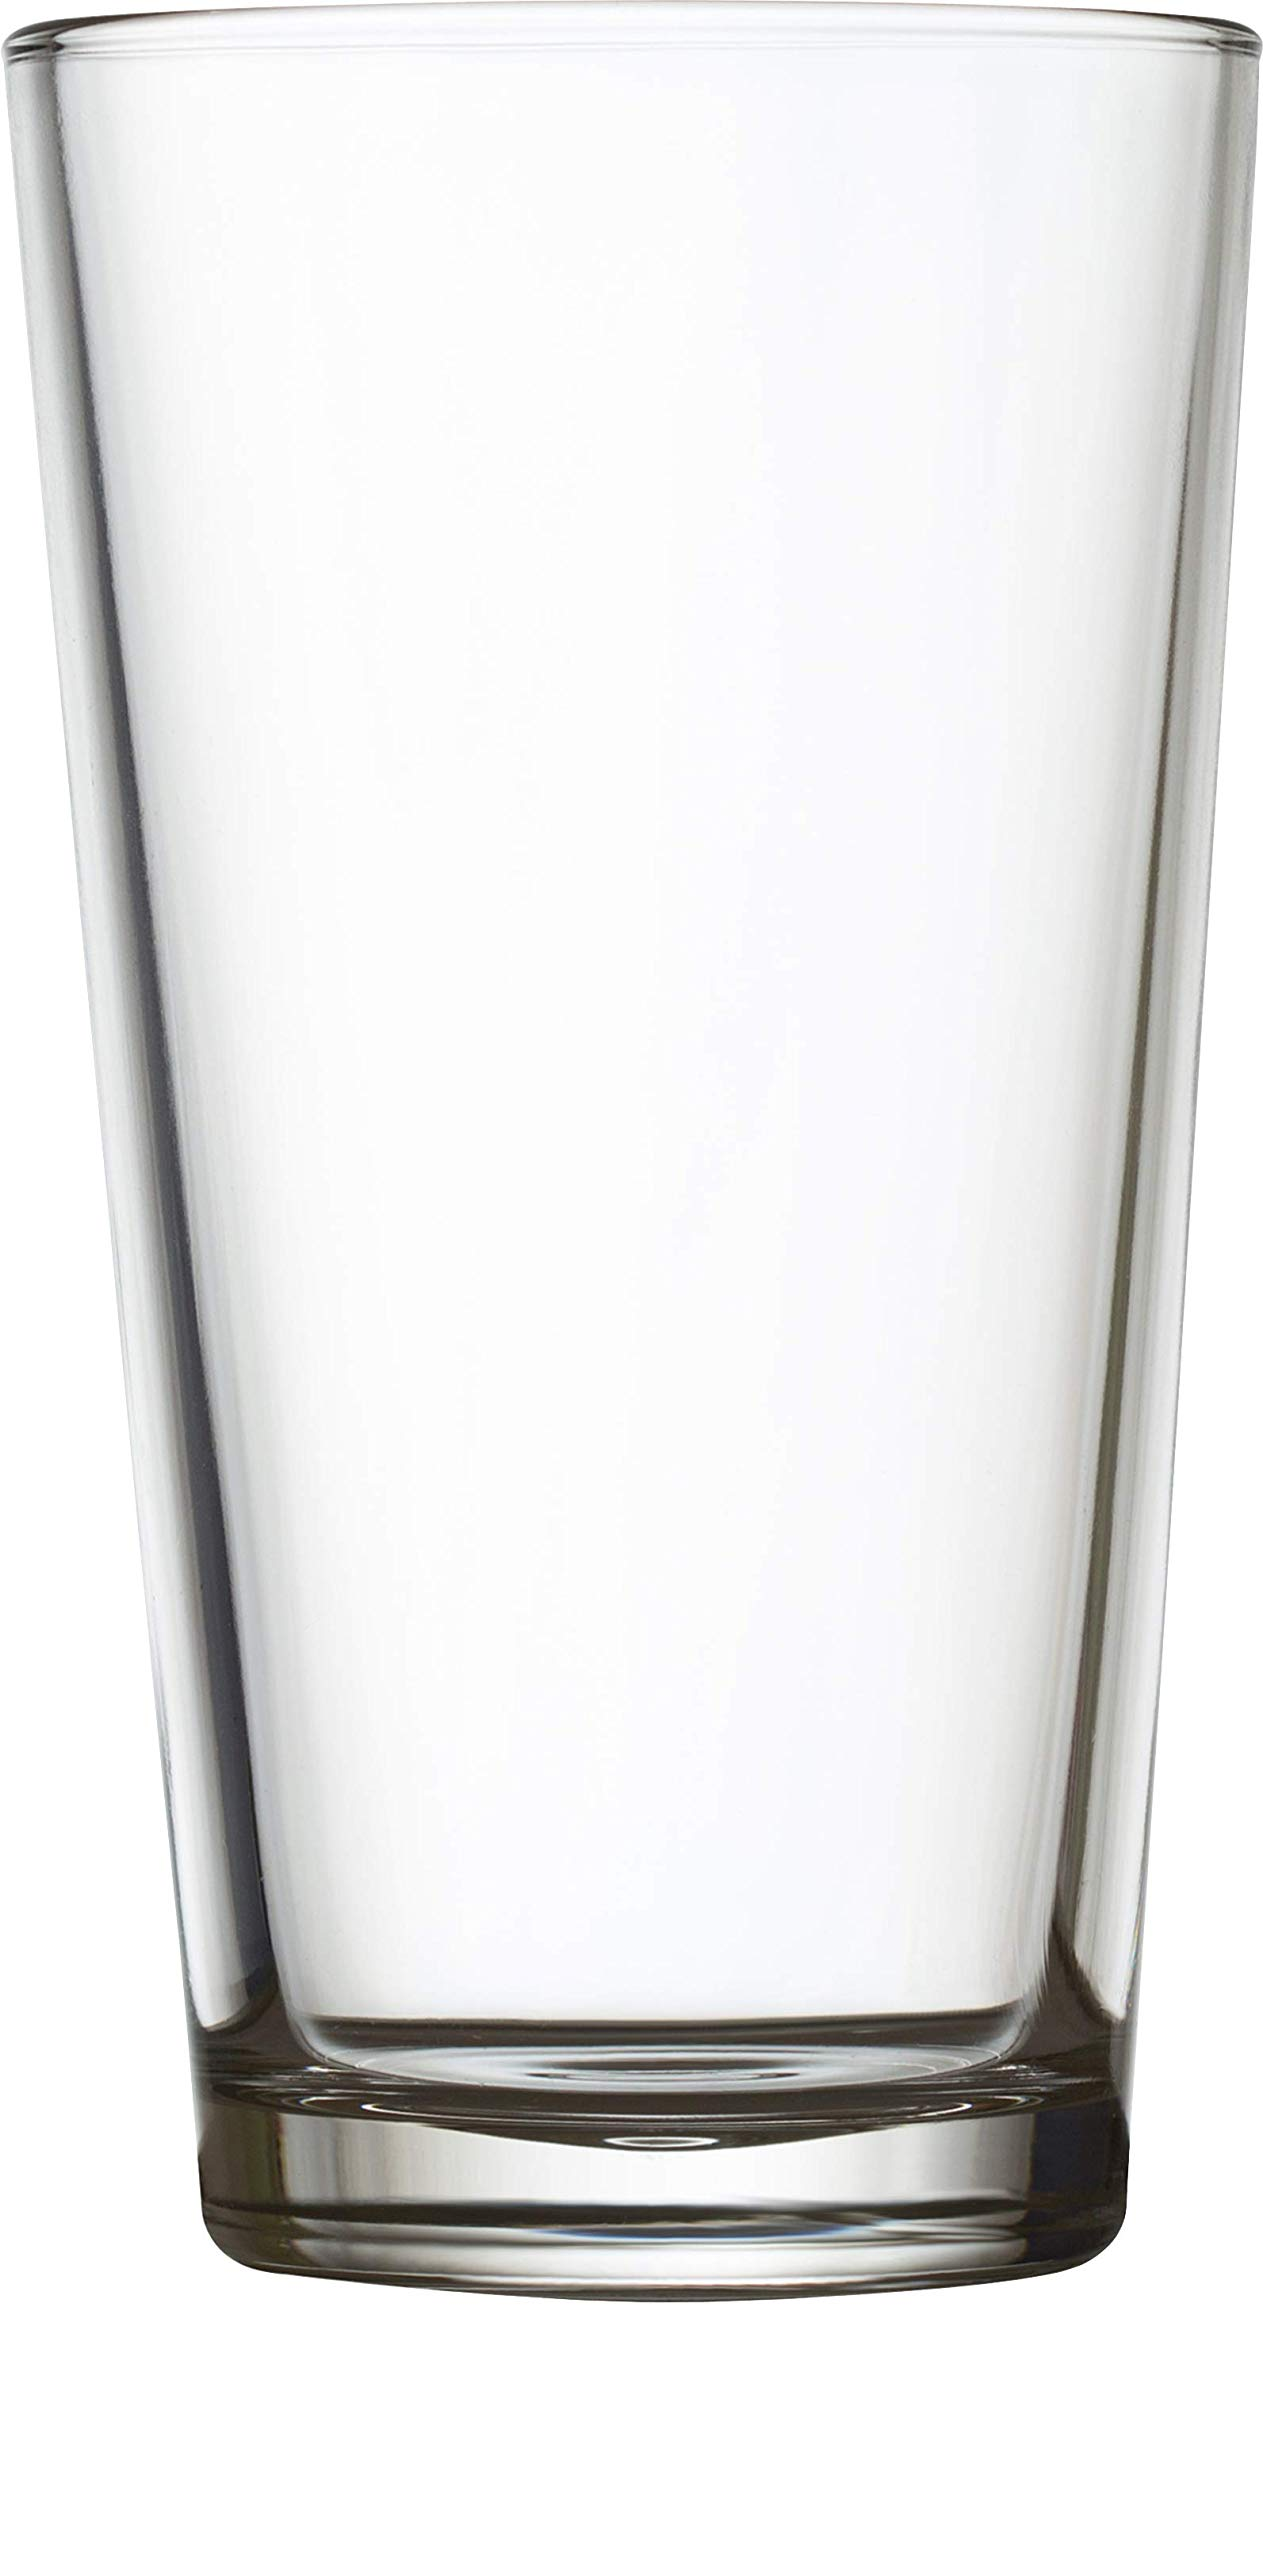 Circleware 04128/AM Huge 24-Piece Set of Highball Tumbler Drinking Glasses 16 oz. Home & Kitchen Party Heavy Base Clear Glassware Cups for Water, Beer, Juice, Ice Tea, Bar Beverages Simple Home 24pc by Circleware (Image #3)